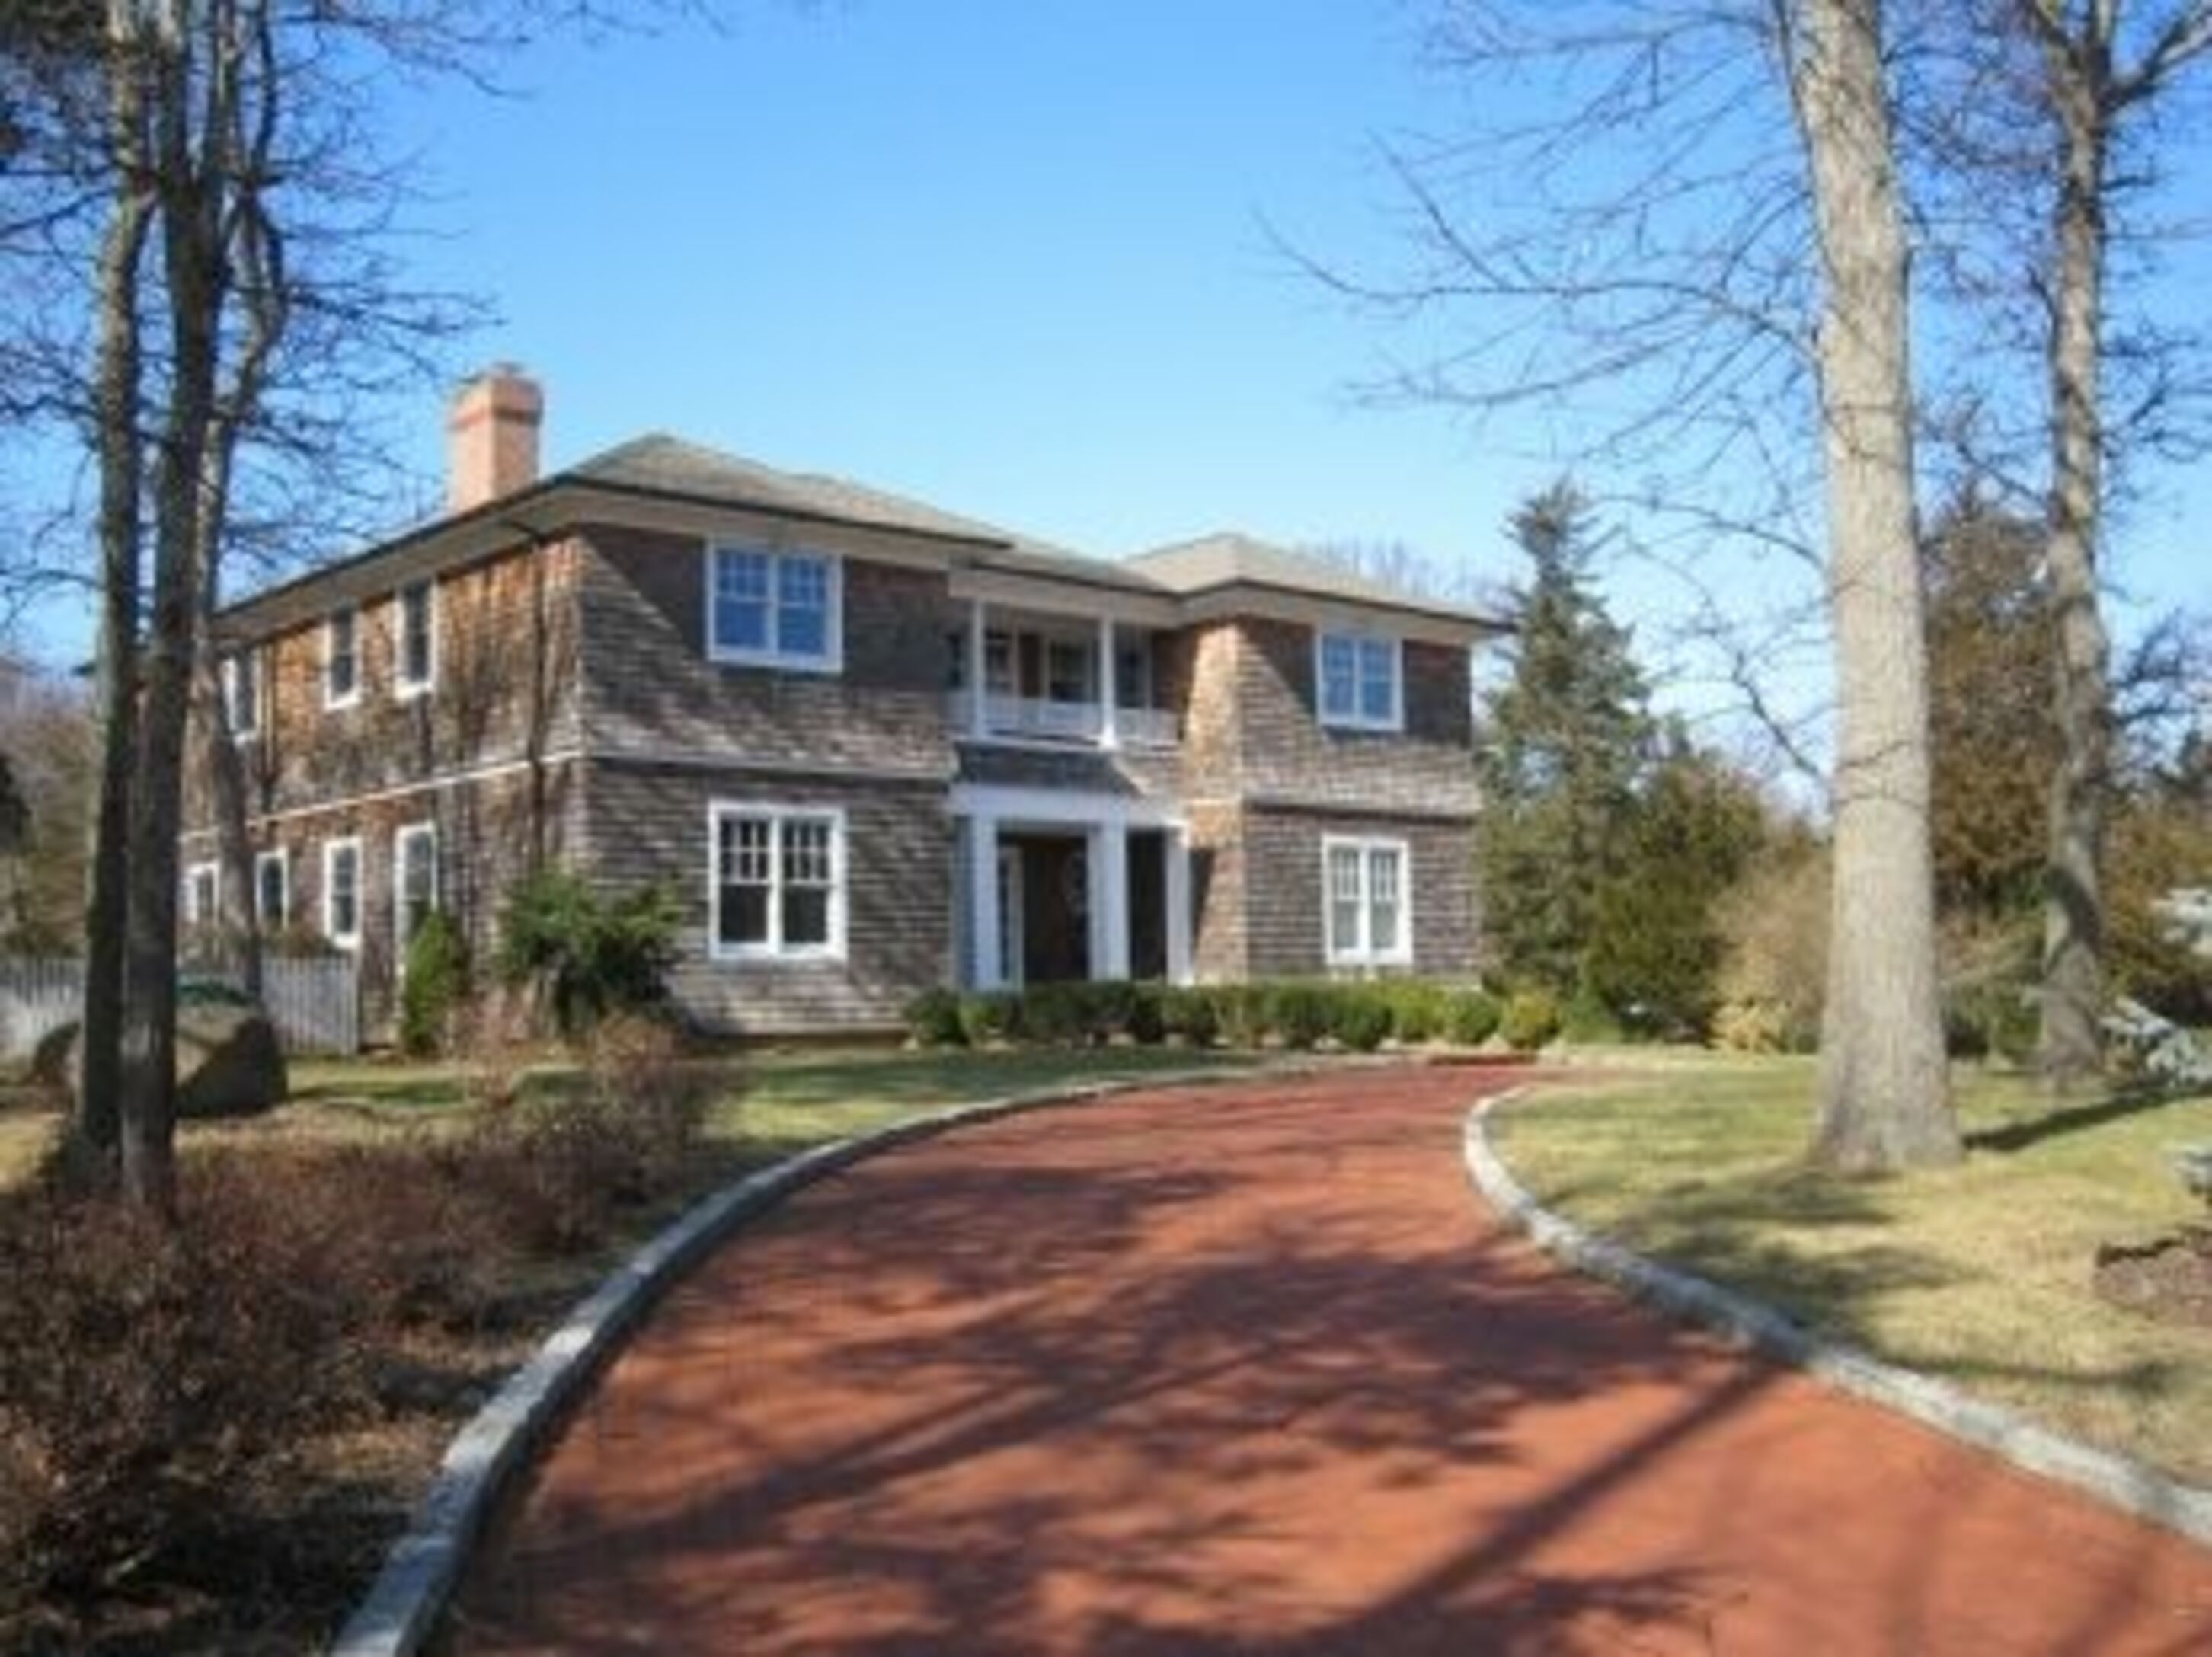 367 Ferry Rd - North Haven, New York